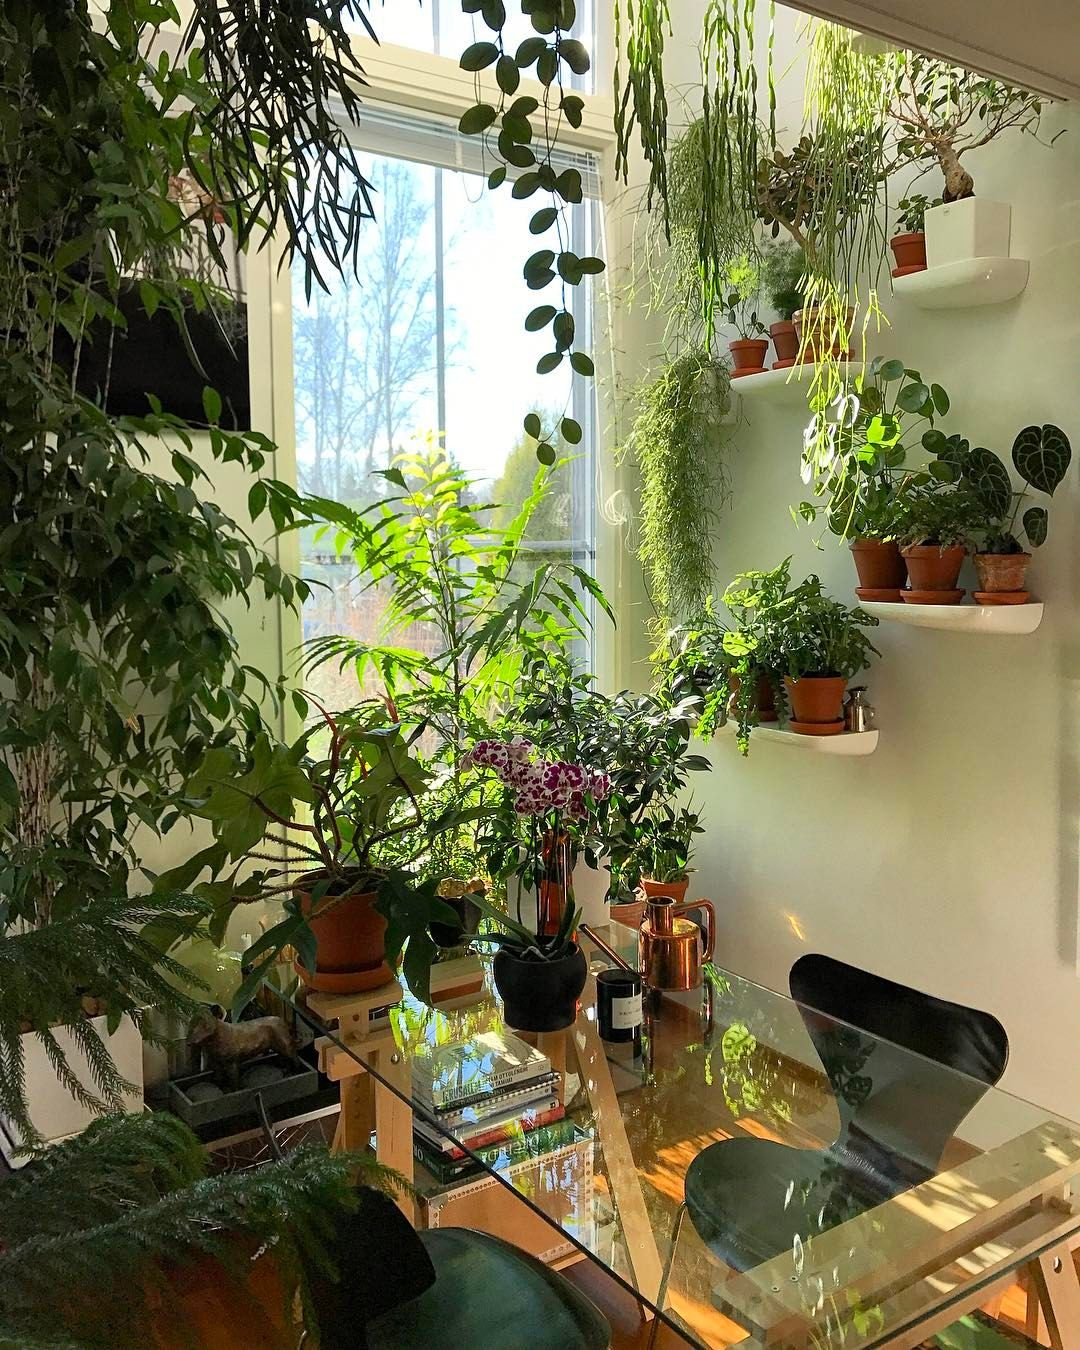 Cool Plants For Your Room Pin By Ingrid Henningsson On House Plants Pinterest